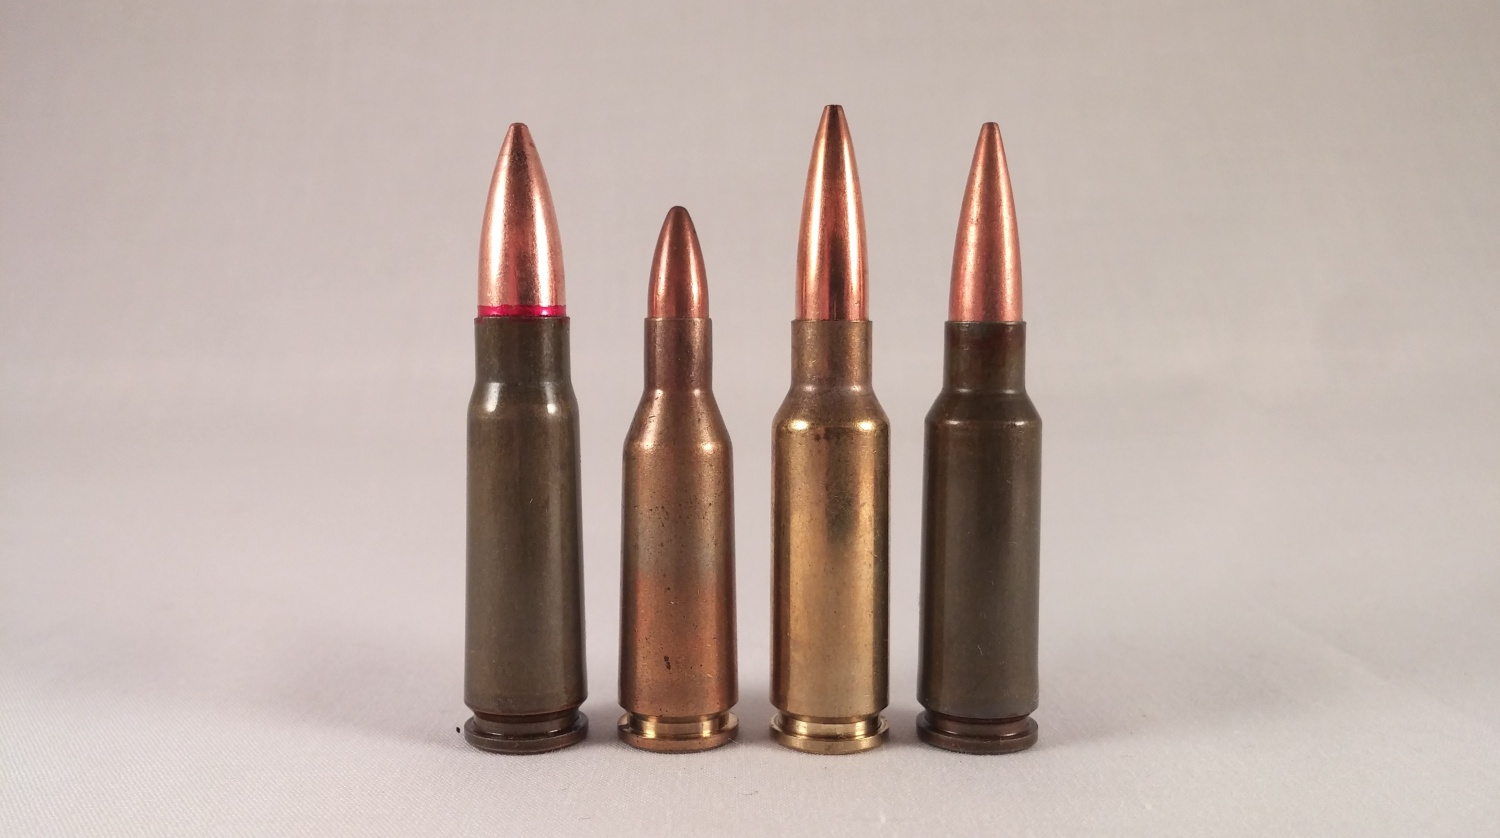 Modern Intermediate Calibers 004 The 6 5 Grendel The